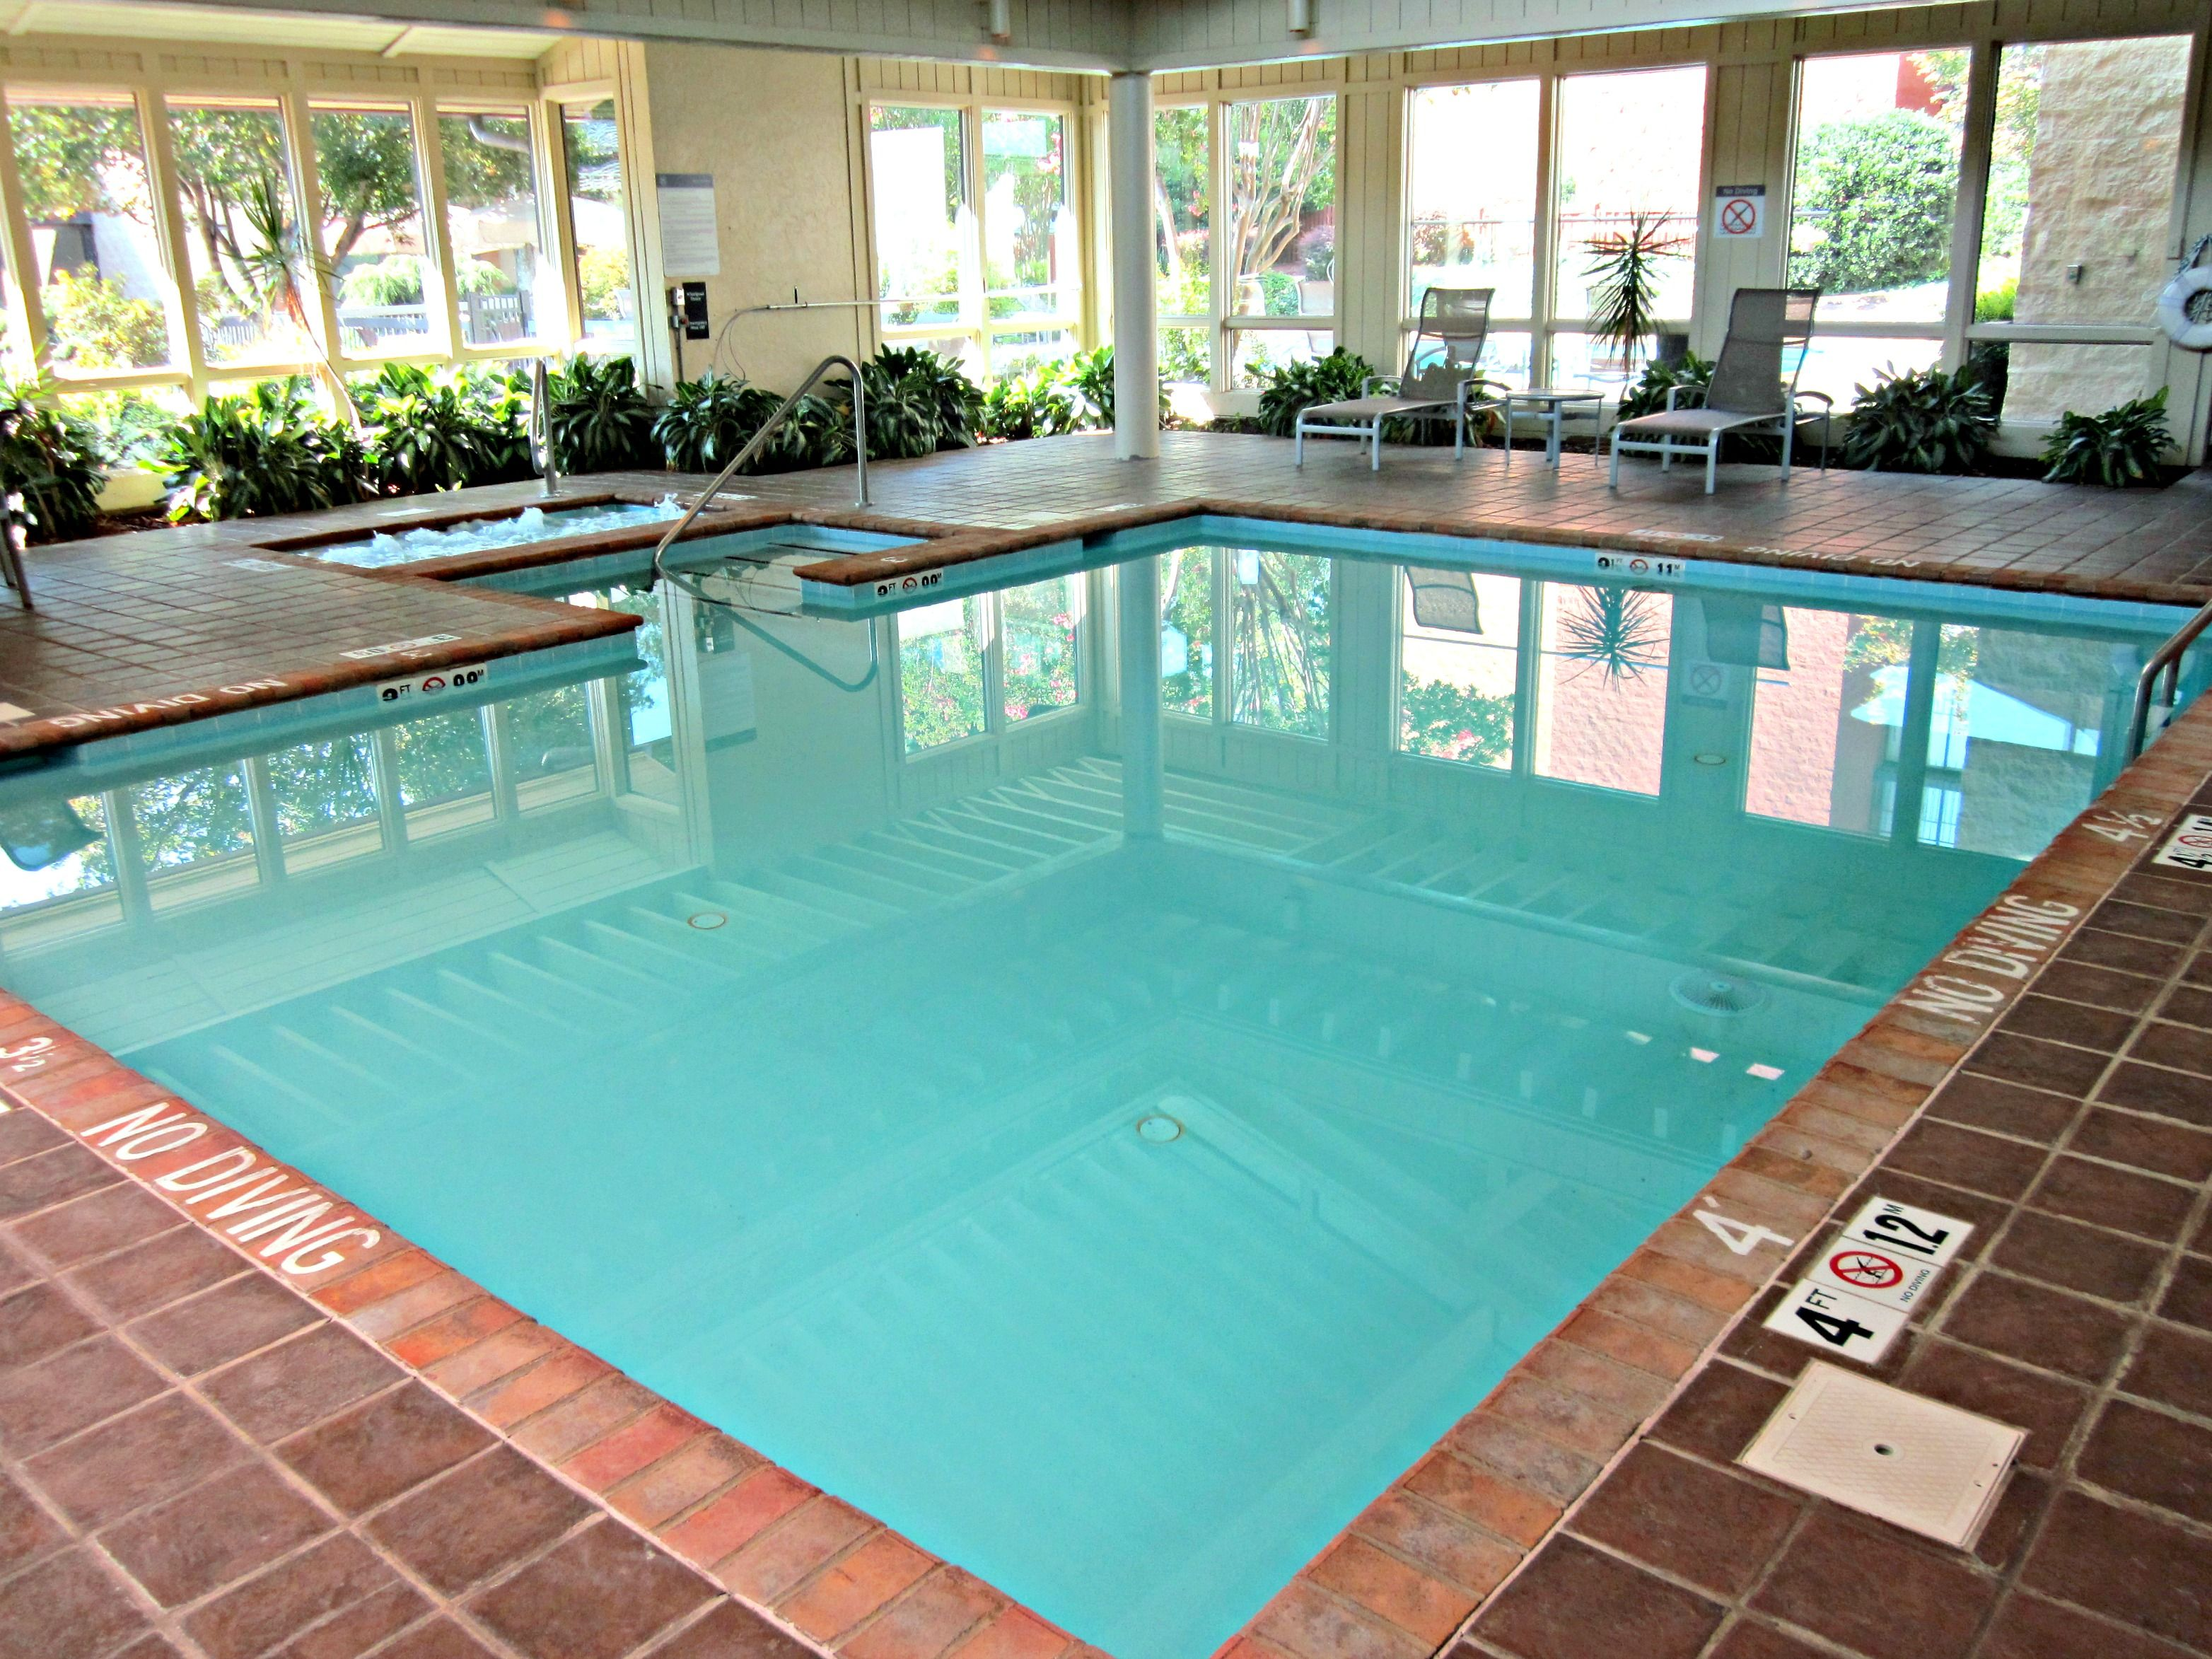 Take Advantage Of The Indoor Pool At The Sheraton Roanoke Hotel And Conference Center In Roanoke Virginia Great For Jacuzzi Spas Roanoke Hotel Indoor Pool